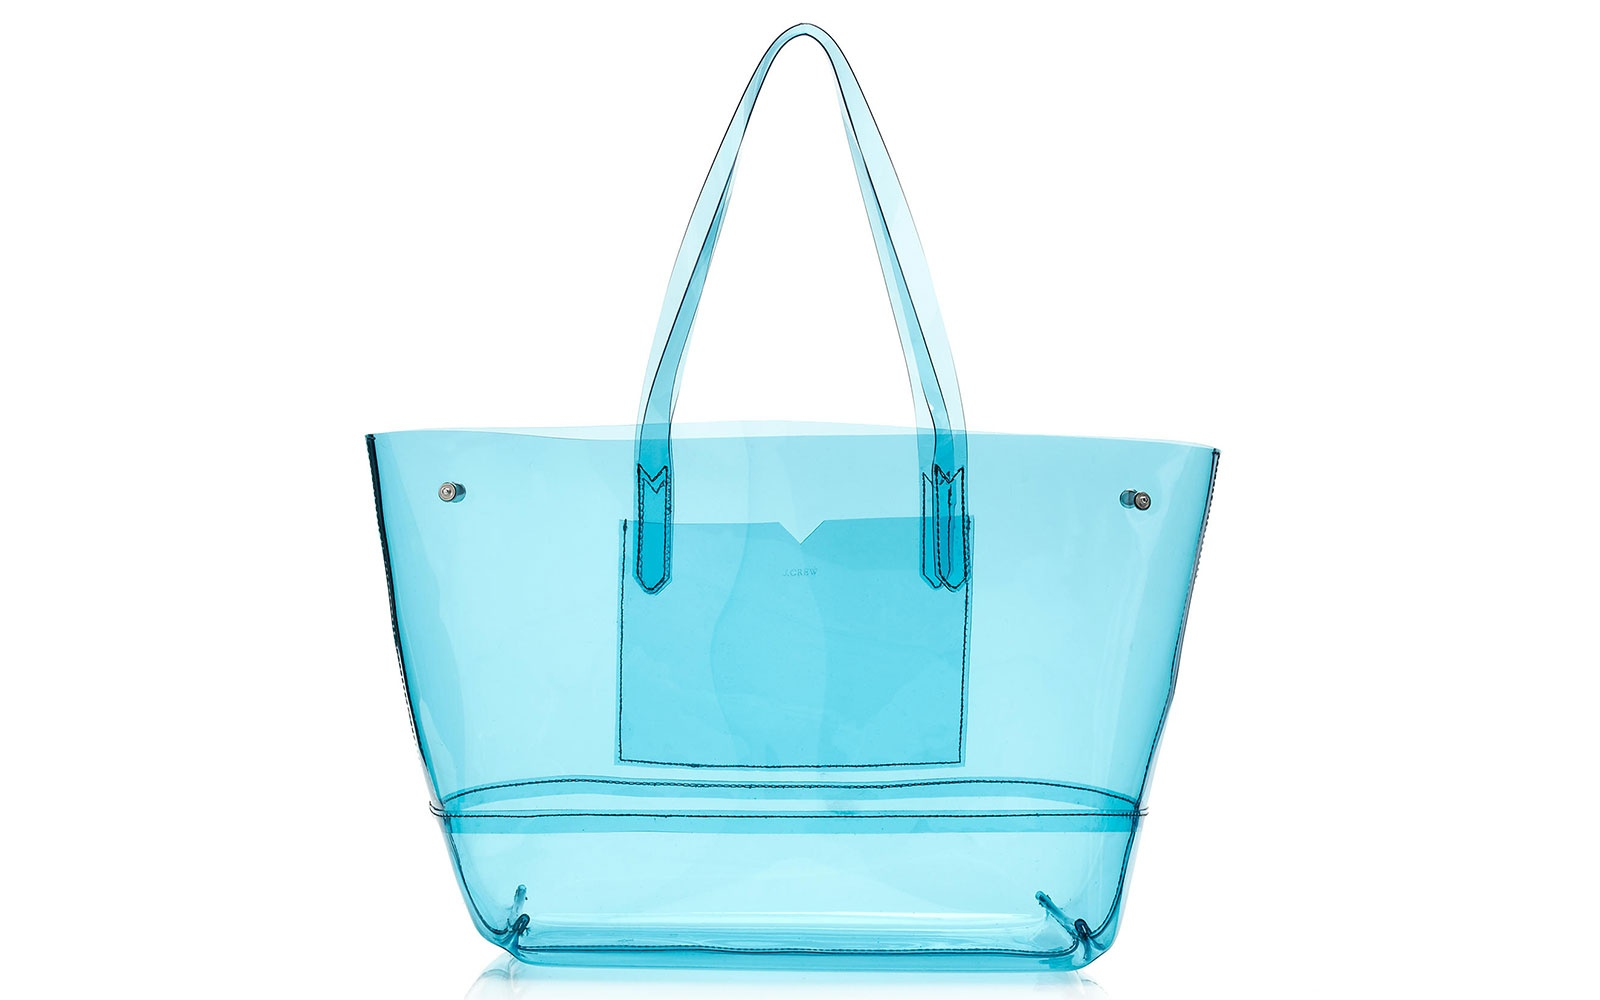 J Crew clear beach tote, $78